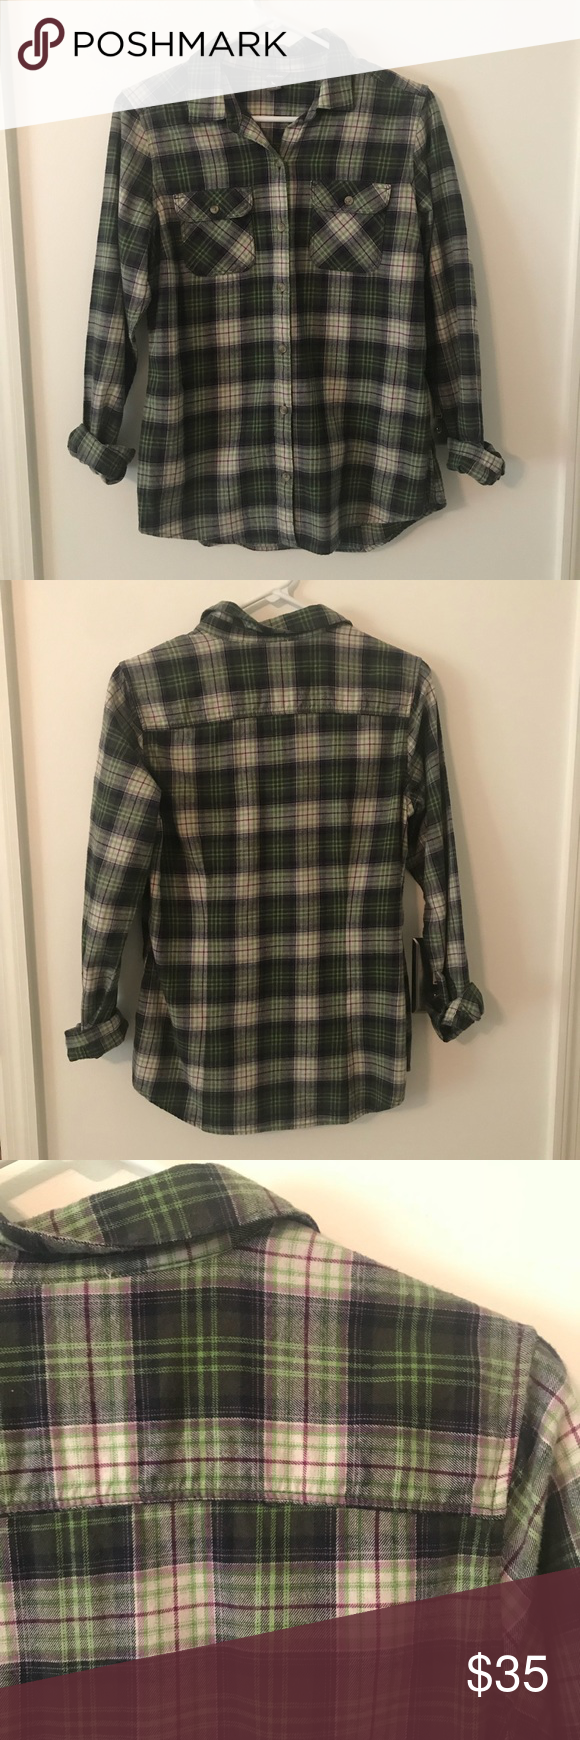 Retro flannel shirts  NWOT Eddie Bauer Flannel Shirt  My Posh Picks  Pinterest  Flannel